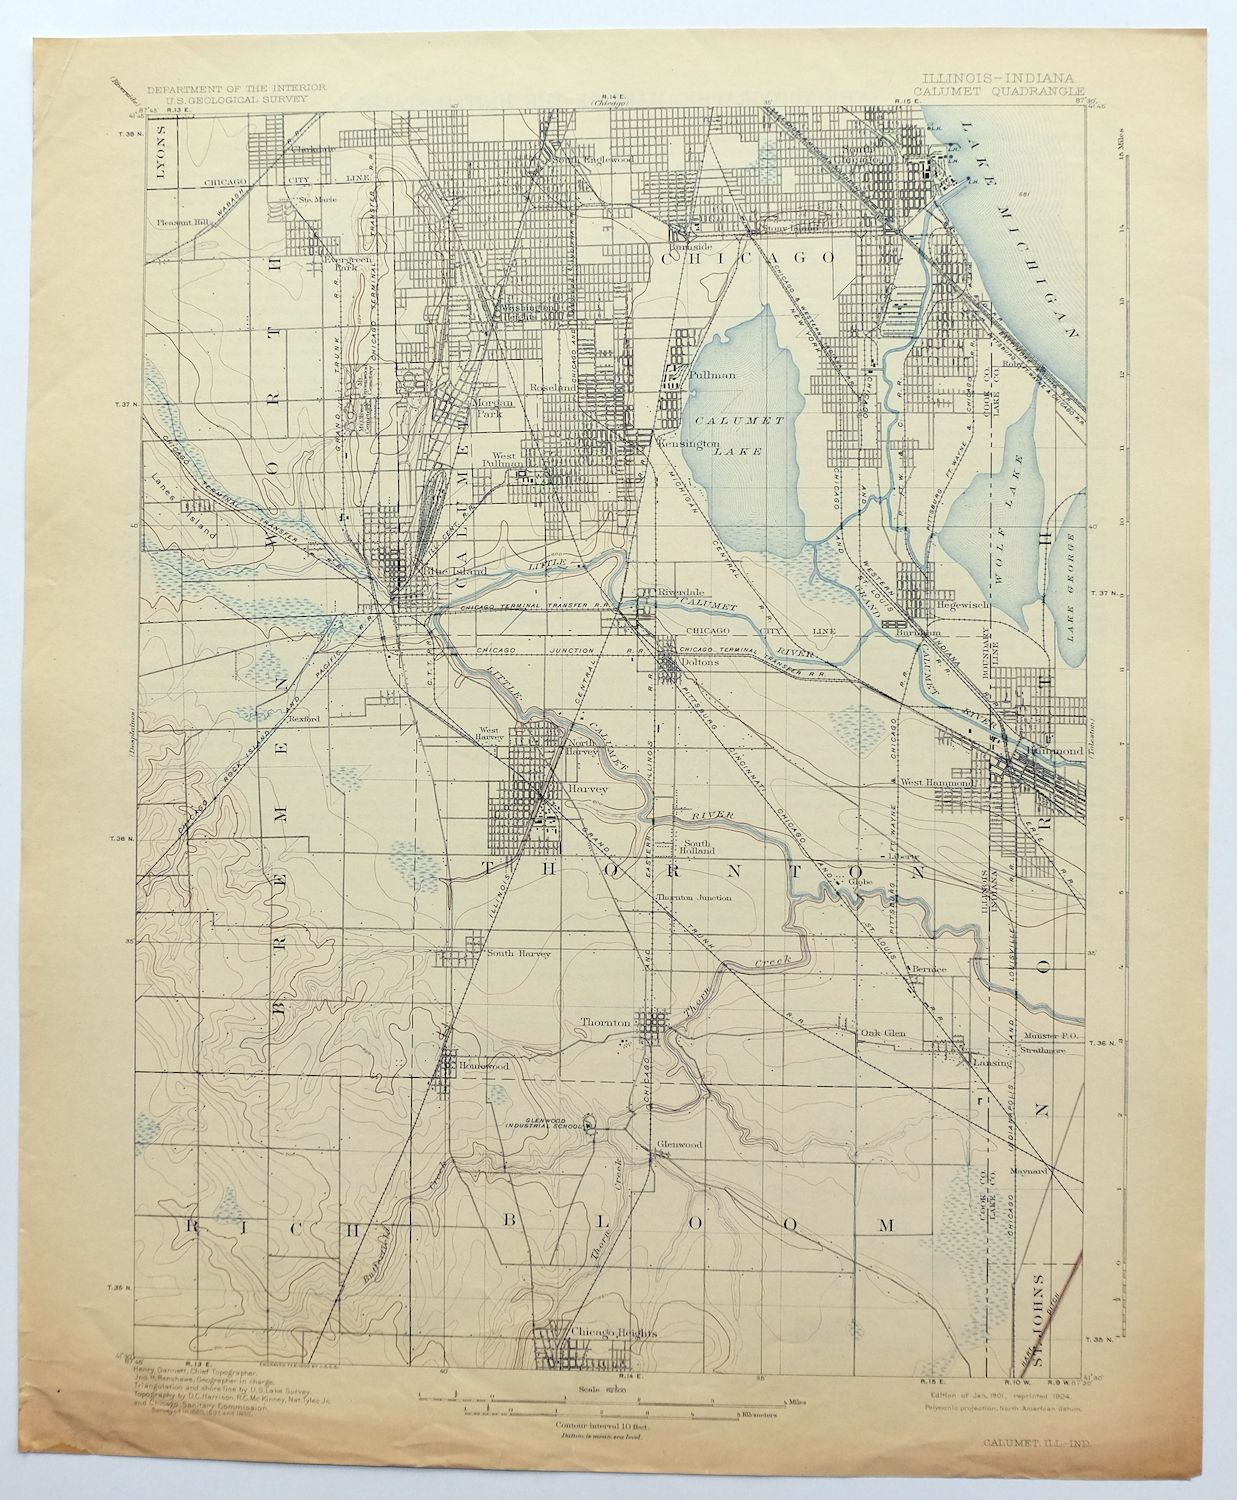 1901 Calumet Illinois Indiana Chicago Vintage Original Usgs